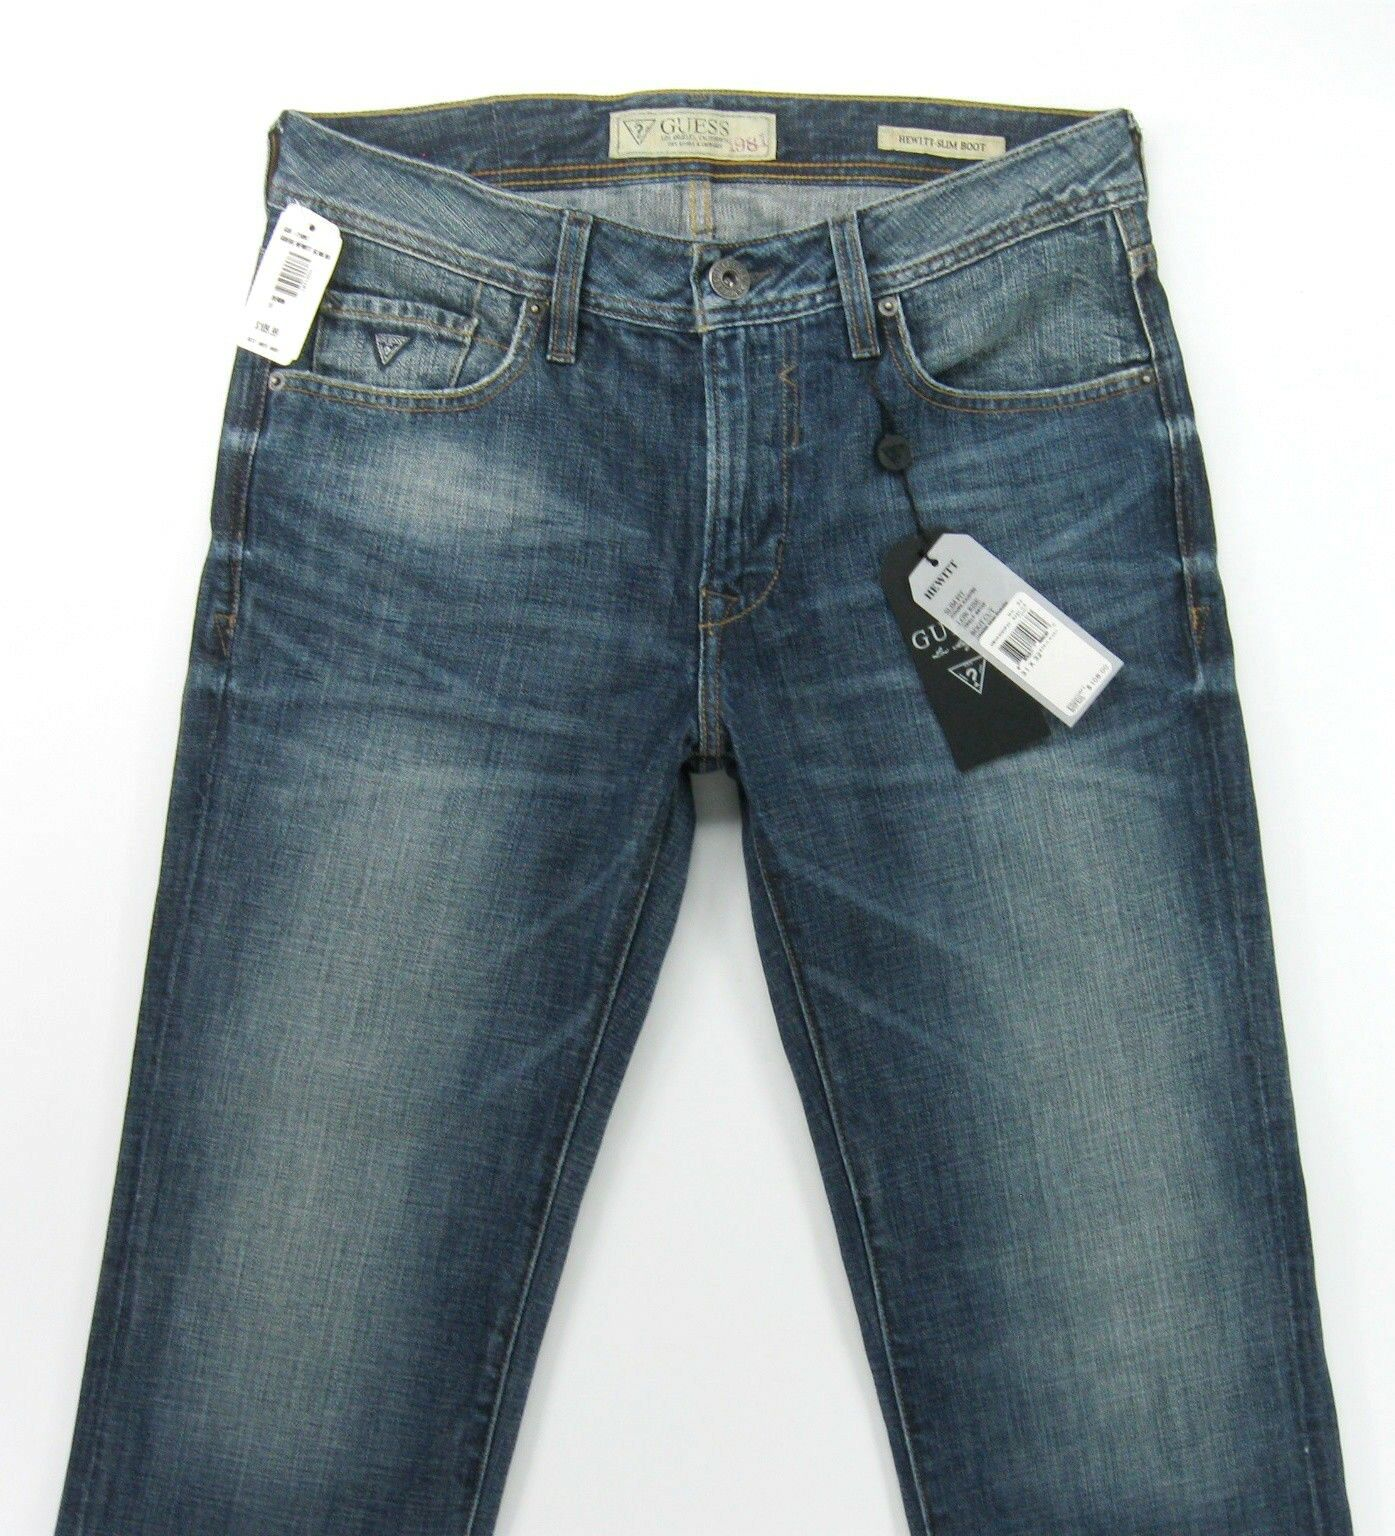 NEW - GUESS HEWITT Slim Bootcut  in Basin Wash- size 31   actual  inseam 33